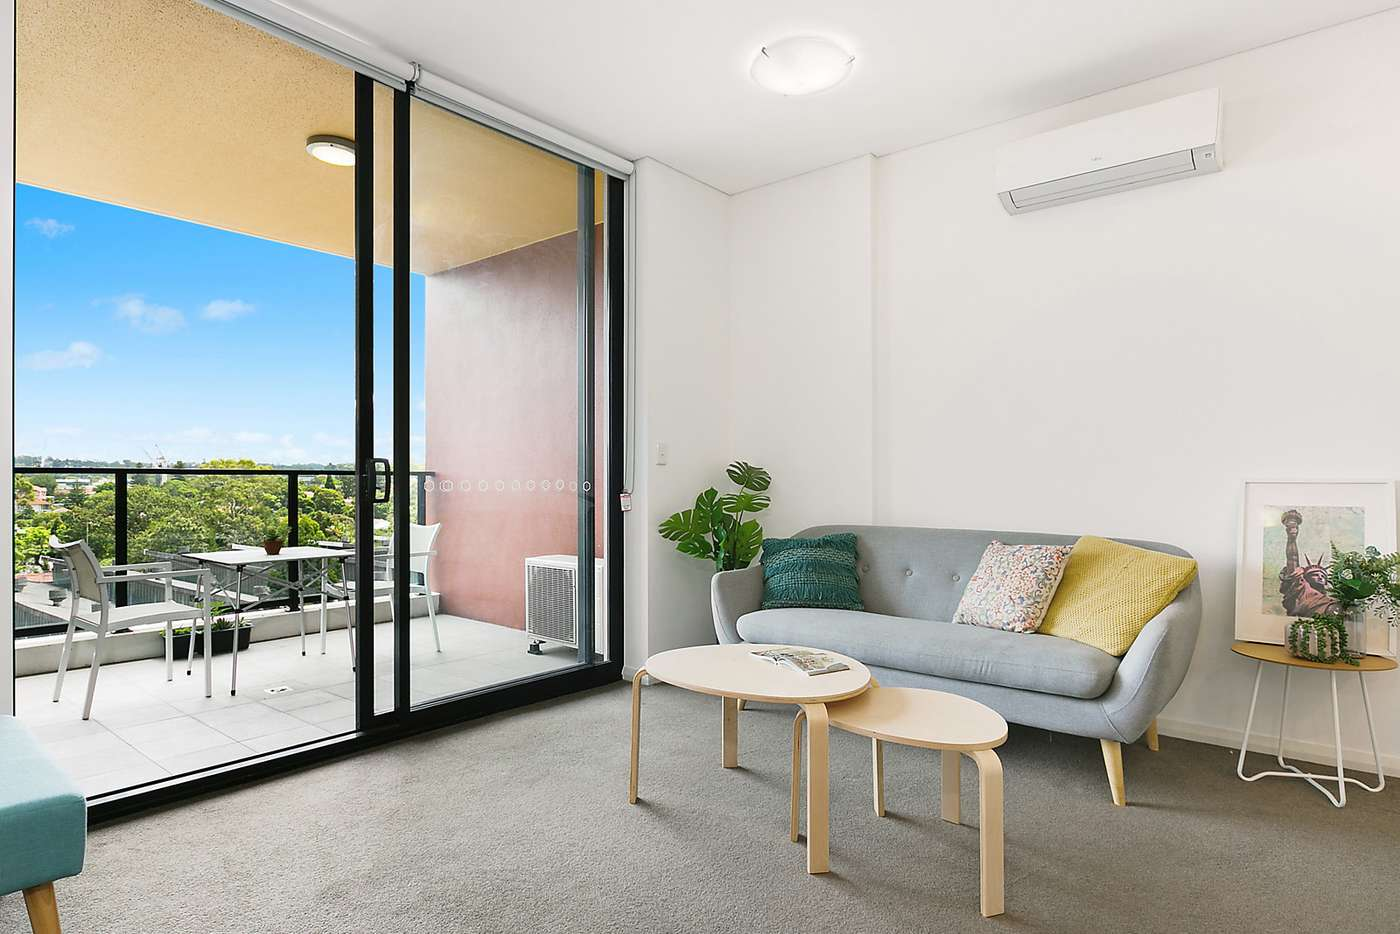 Main view of Homely apartment listing, 5032/78A Belmore Street, Ryde NSW 2112